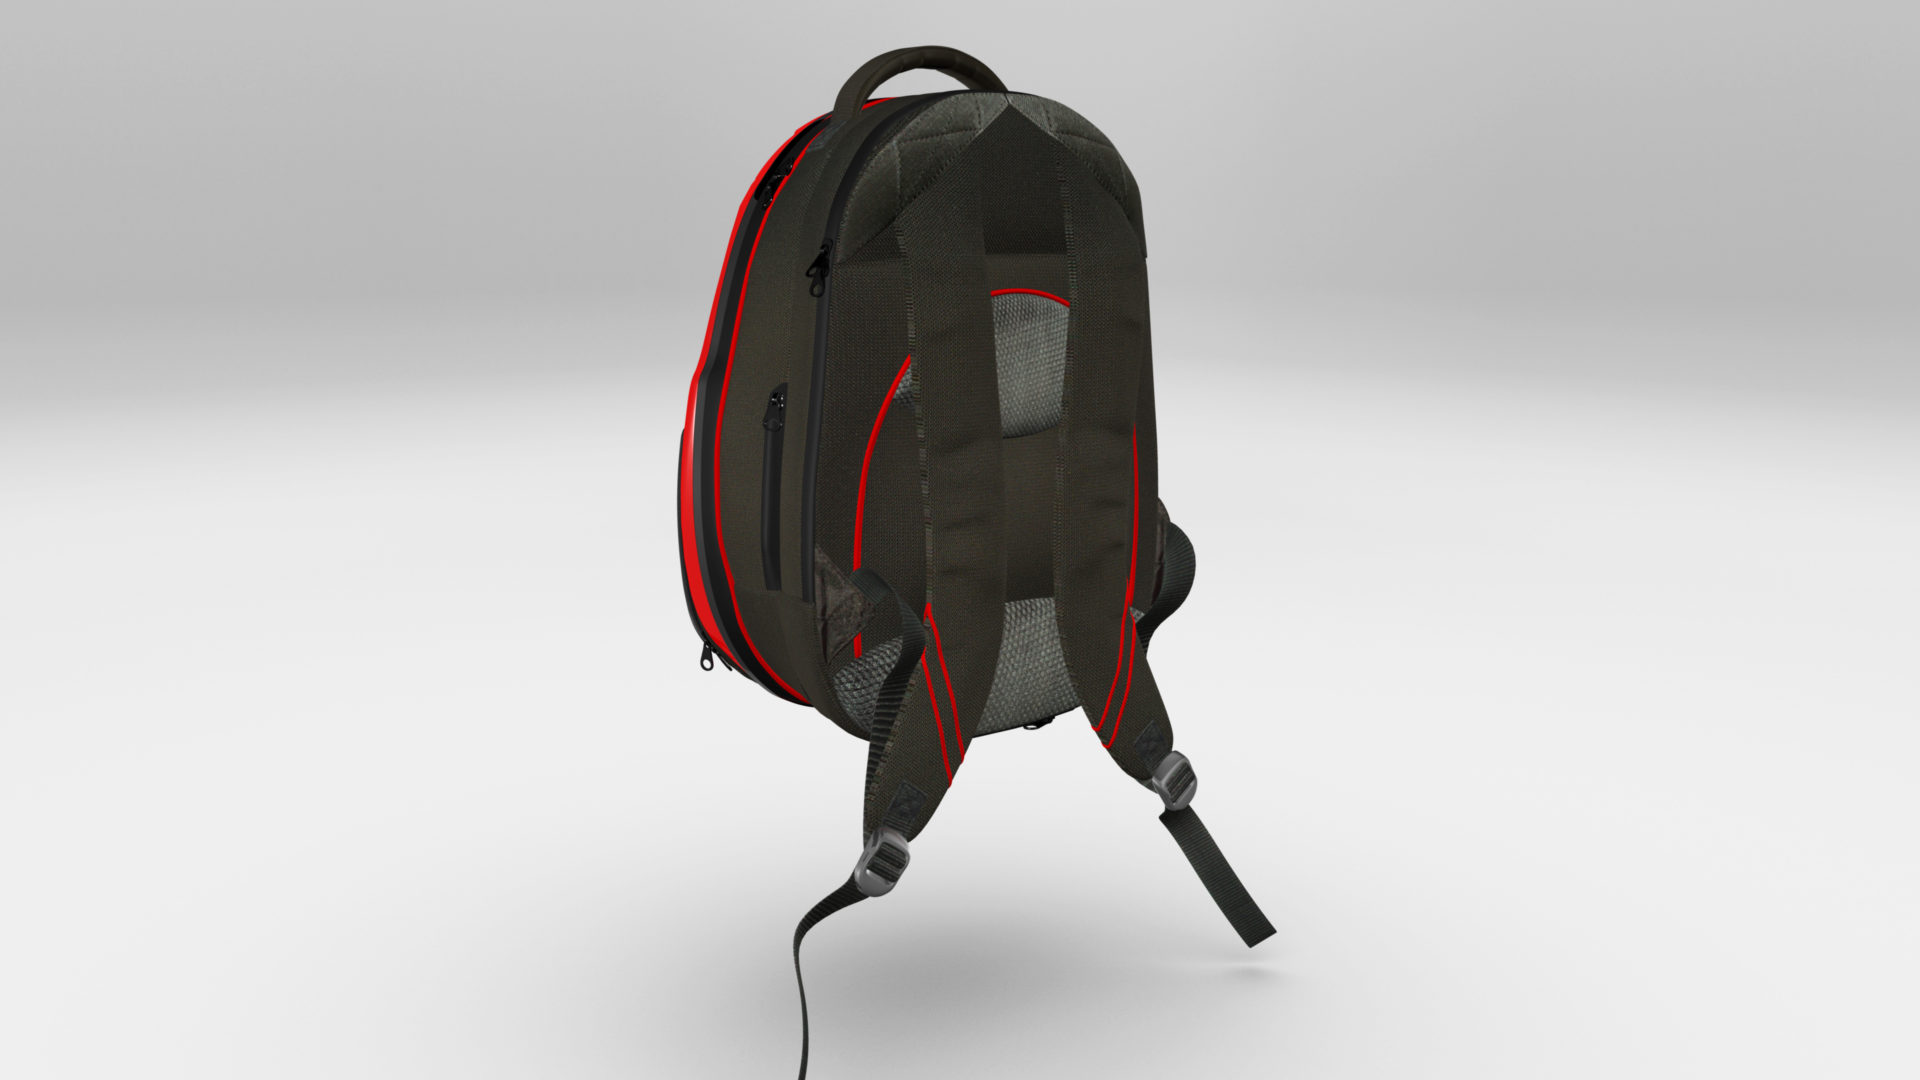 backpack 01 3d model max fbx ma mb obj 286039